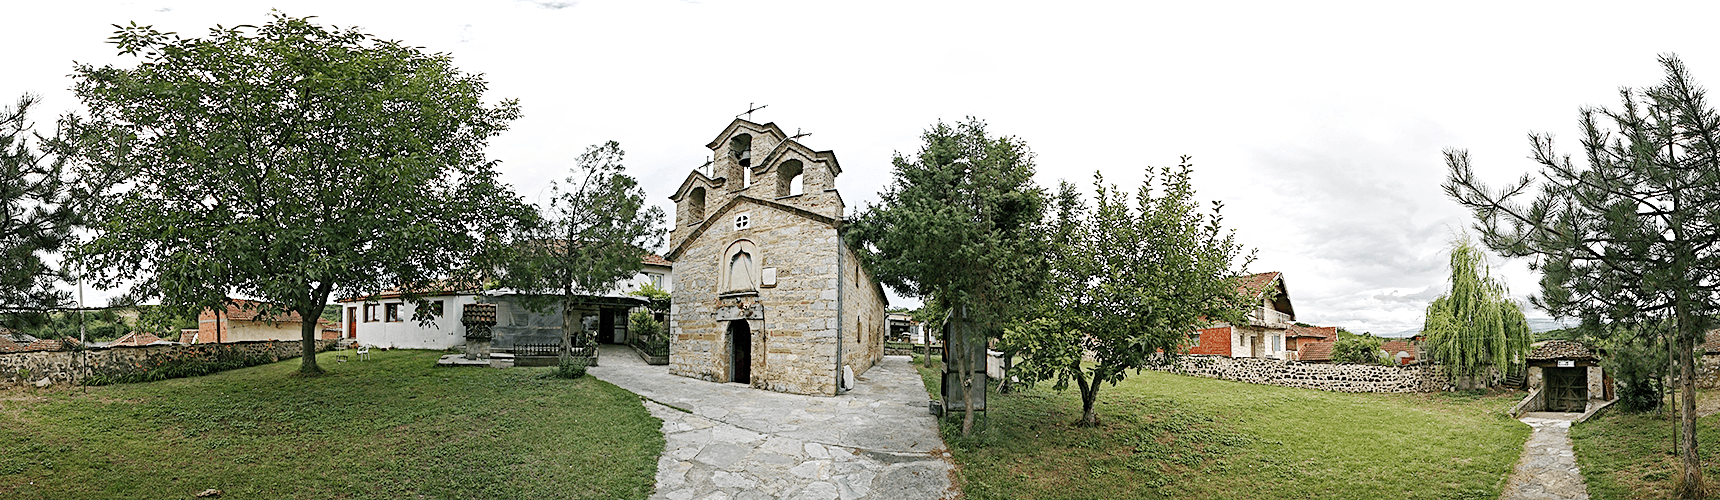 Church in Velika Hoca